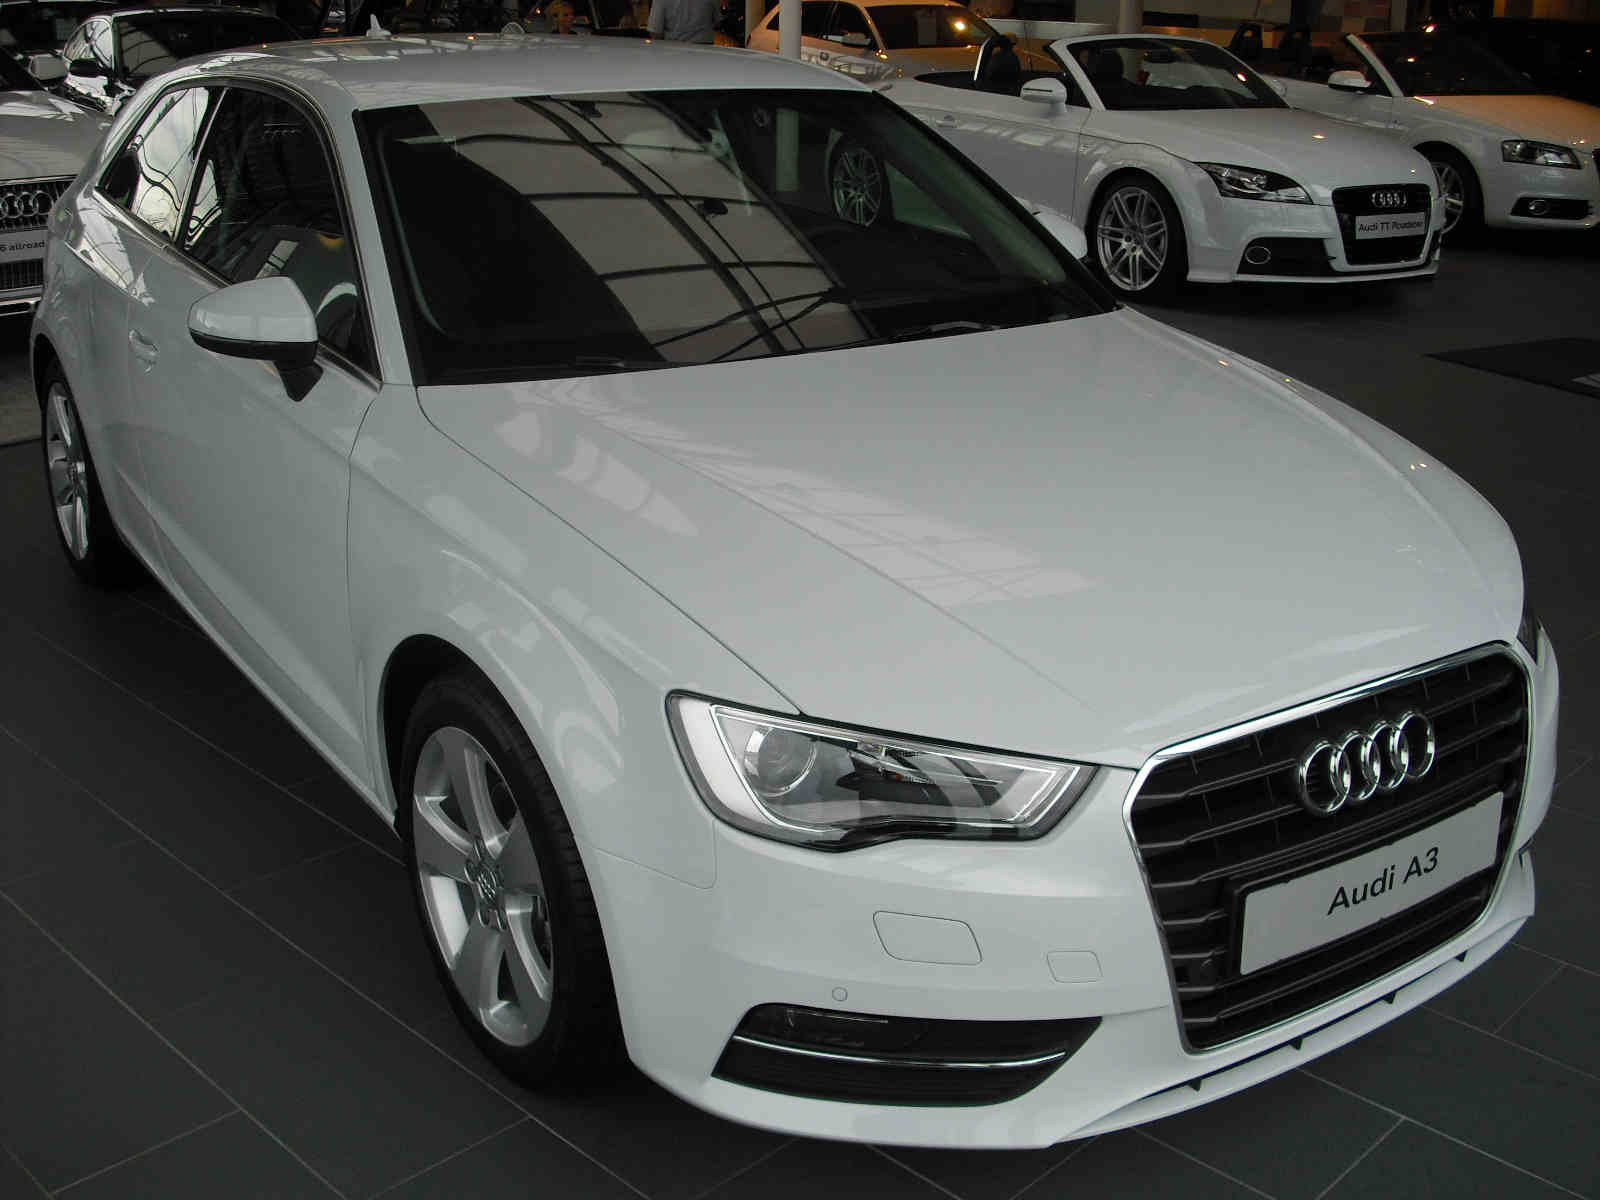 der neue audi a3 eu neuwagen 2012 reimport berlin s tronic. Black Bedroom Furniture Sets. Home Design Ideas